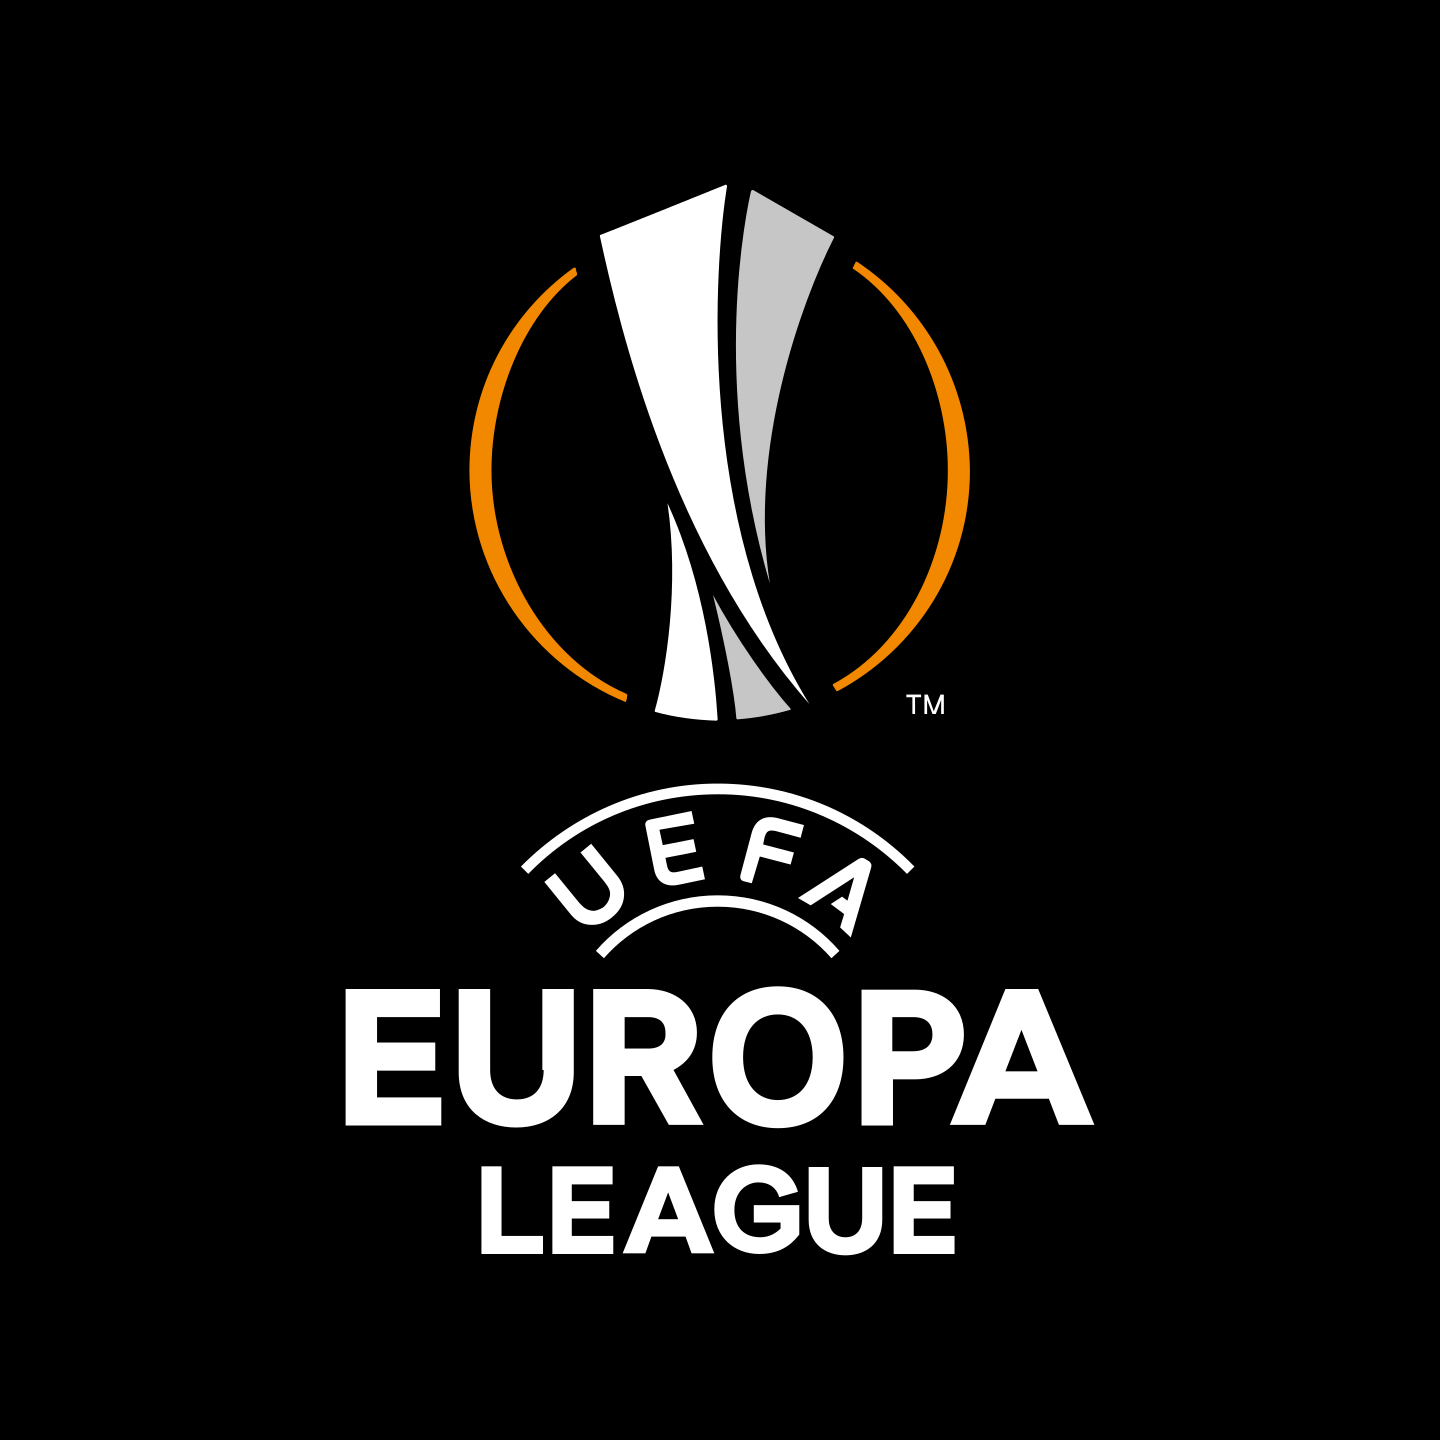 europa league logo 1 - UEFA Europa League Logo